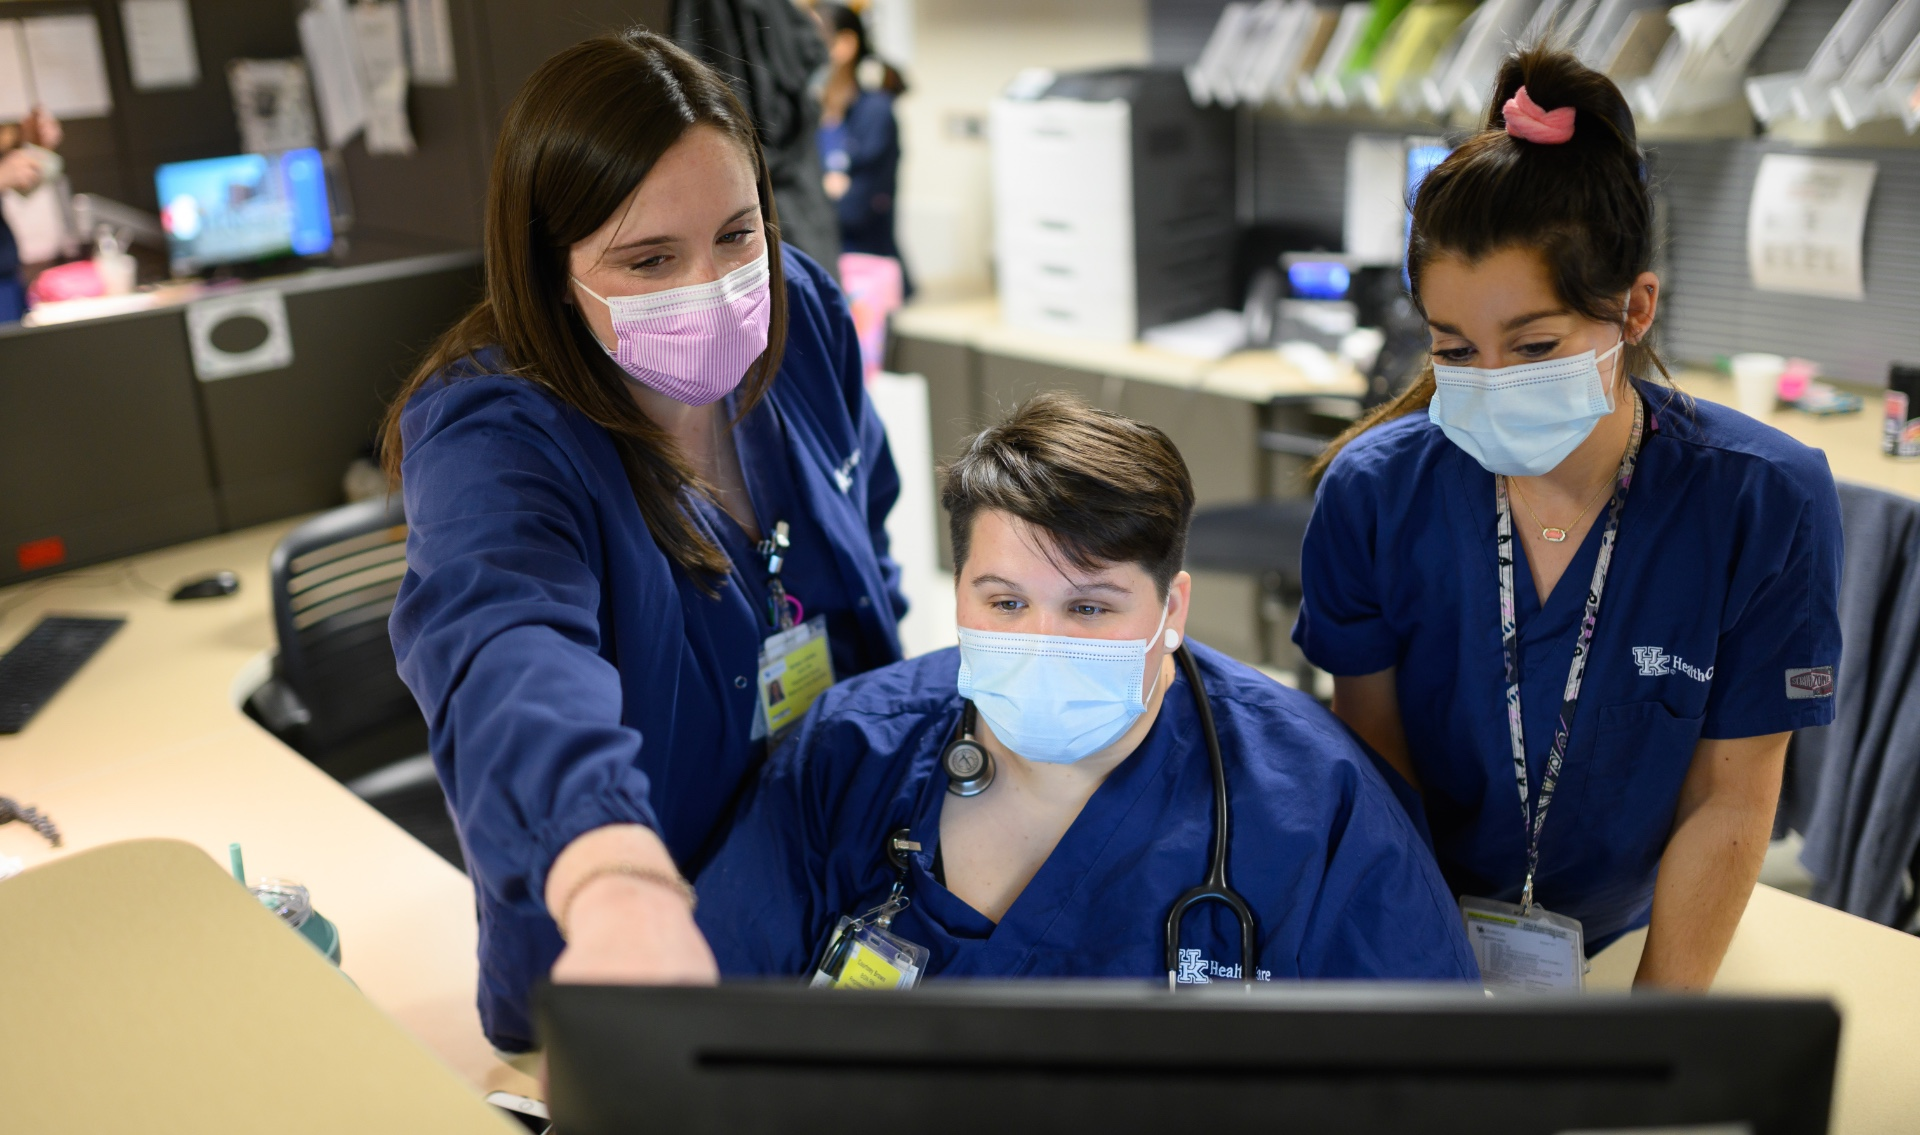 Kelsey stands beside two of her female work colleagues pointing to a computer screen. They are all wearing navy scrubs with different colored face masks.